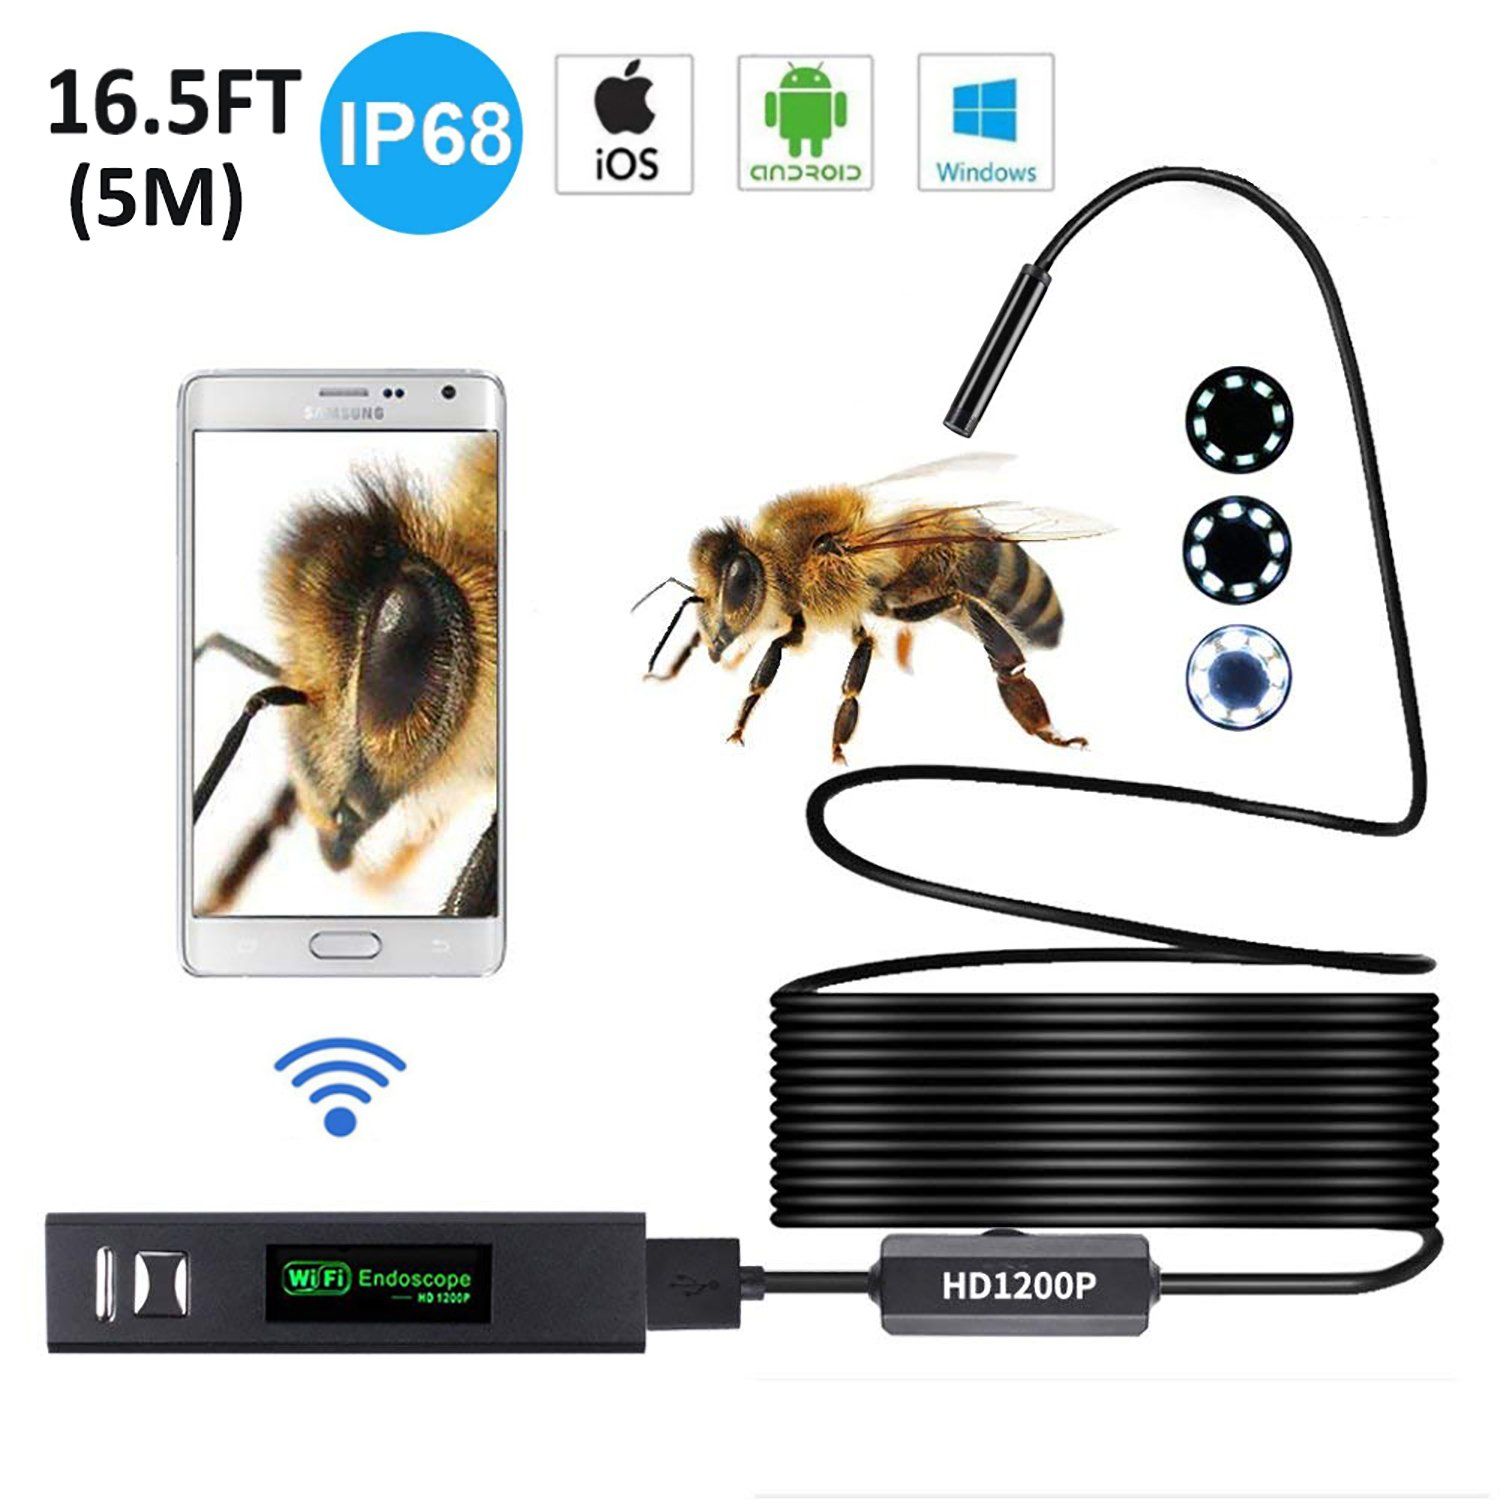 Wireless Endoscope IP68 Waterproof, Ranipobo Inspection Camera 8mm HD 1200P Semi-rigid Wifi Borescope Snake Camera with 8 Adjustable LEDs for Android & IOS Smartphone Tablet - Black 16.5FT